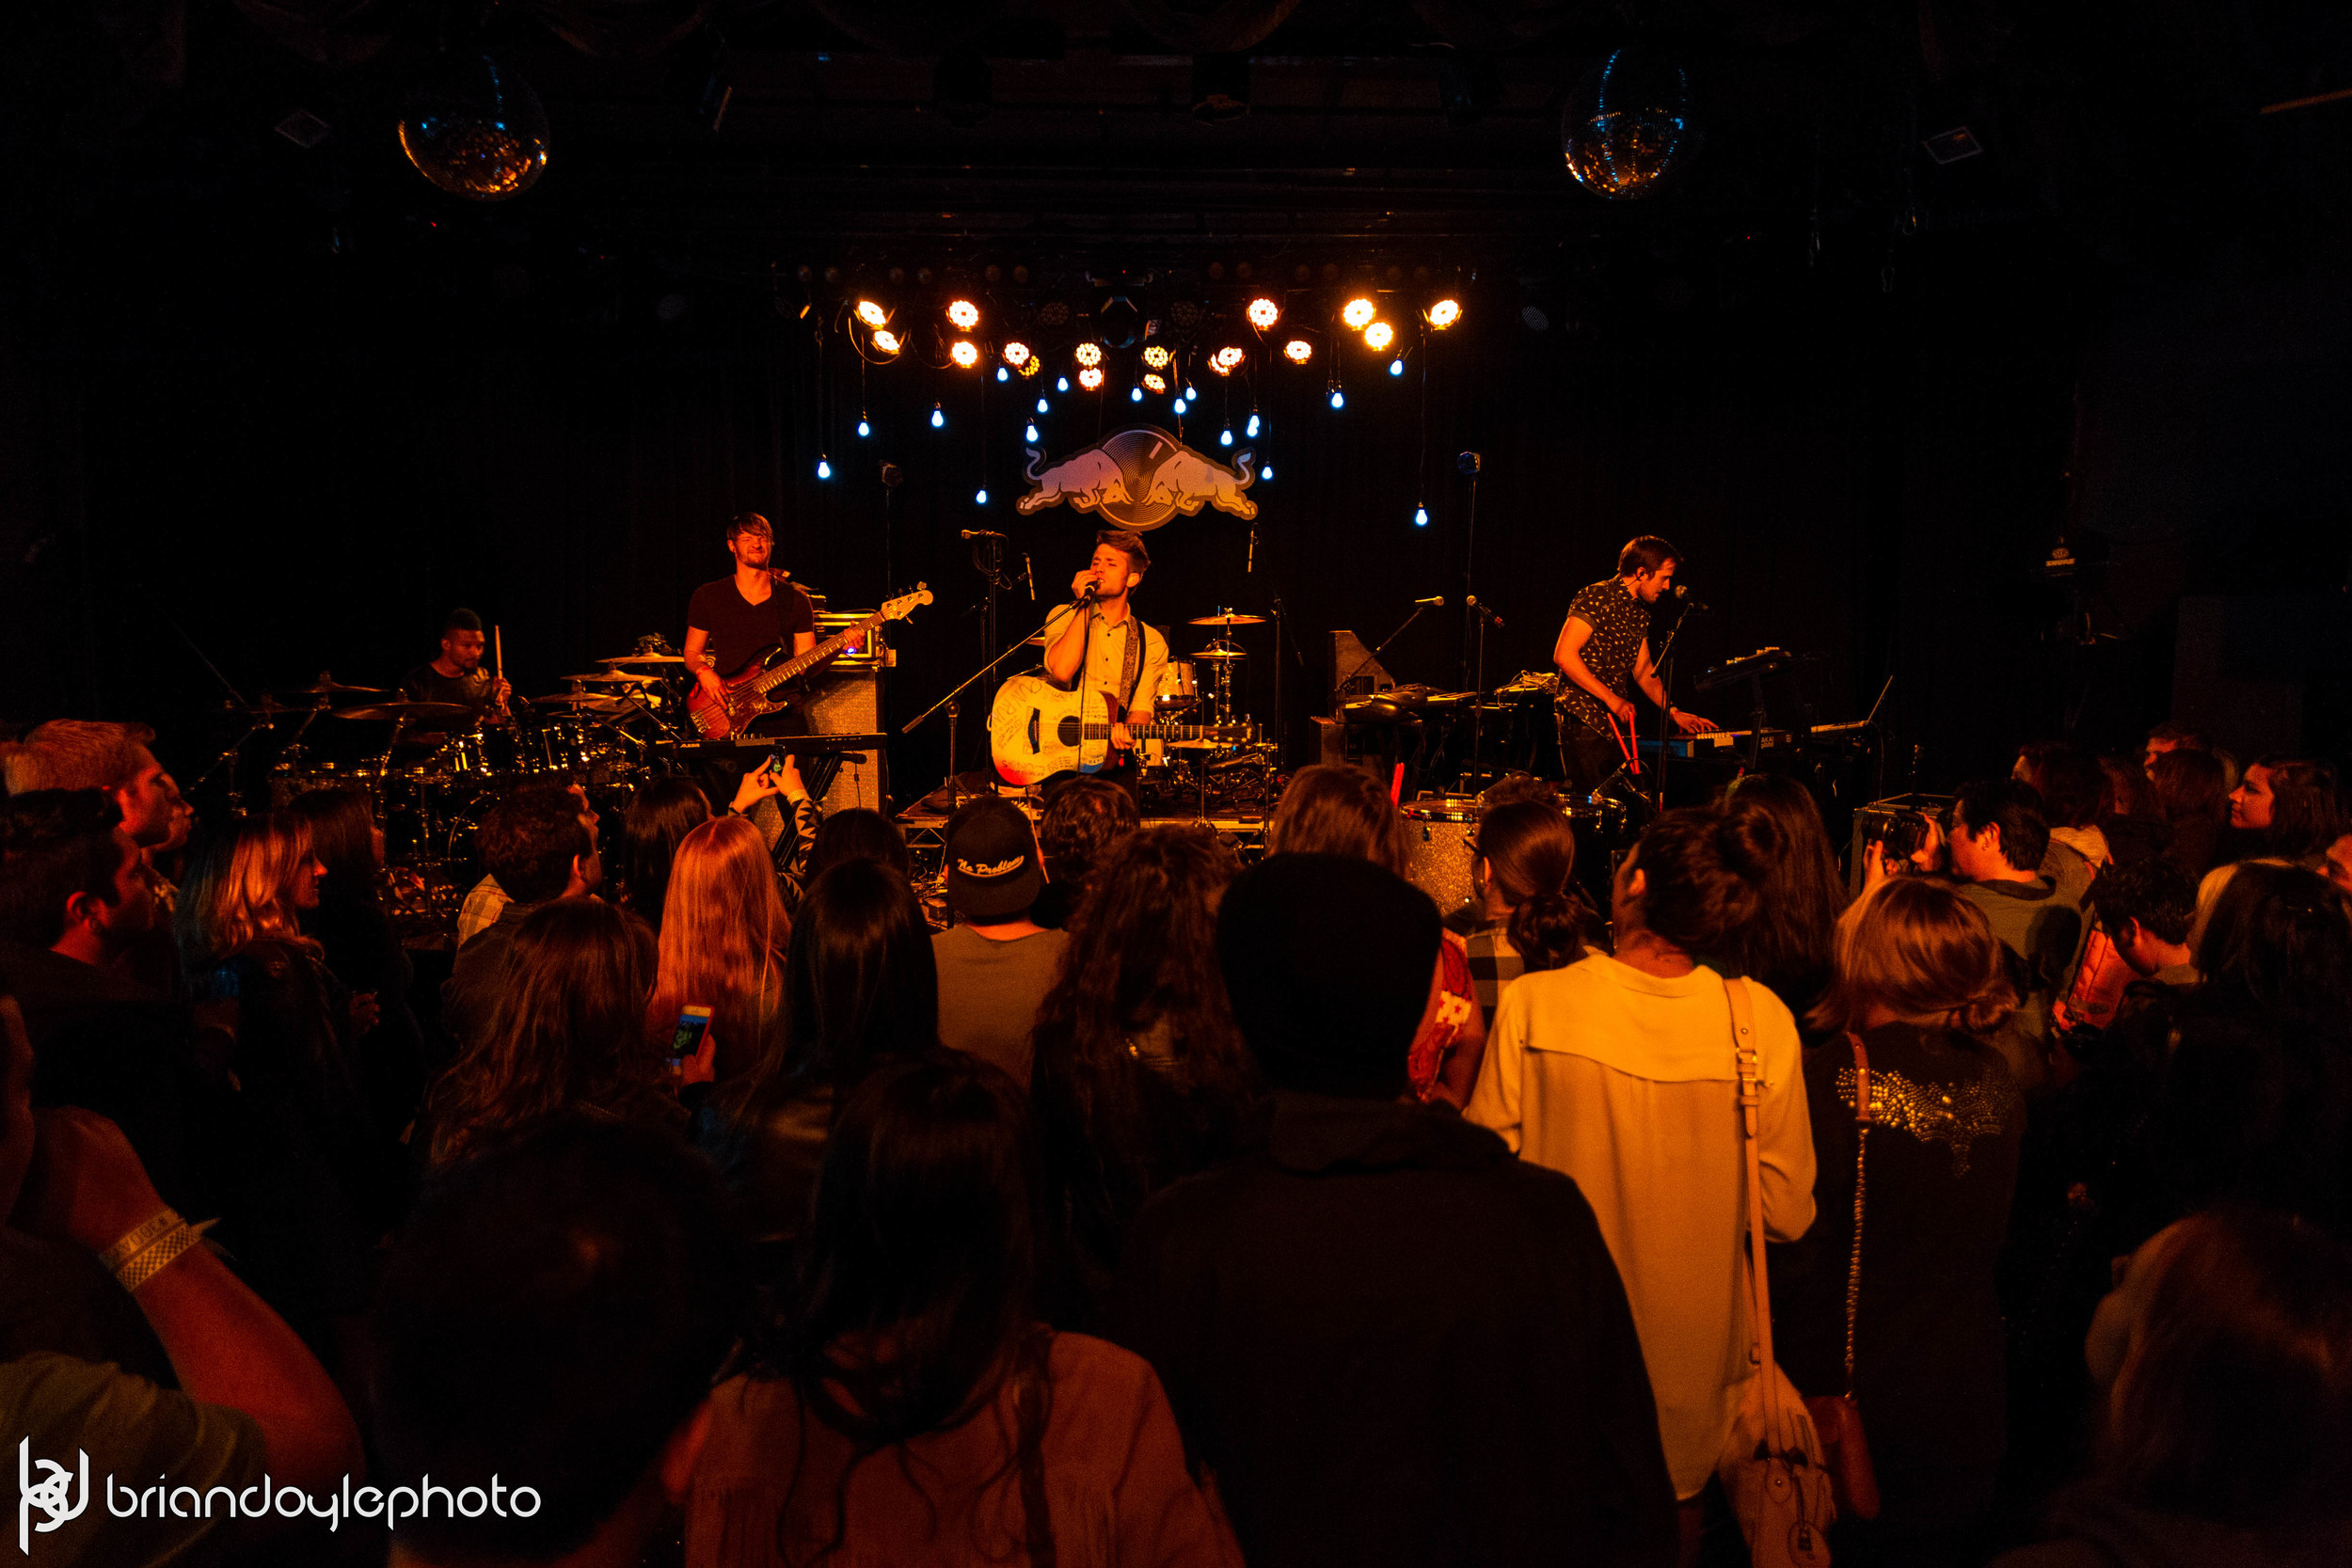 Red Bull - MS MR, Feathers, Electric Sons @ The Roxy 2014.11.02 -17.jpg